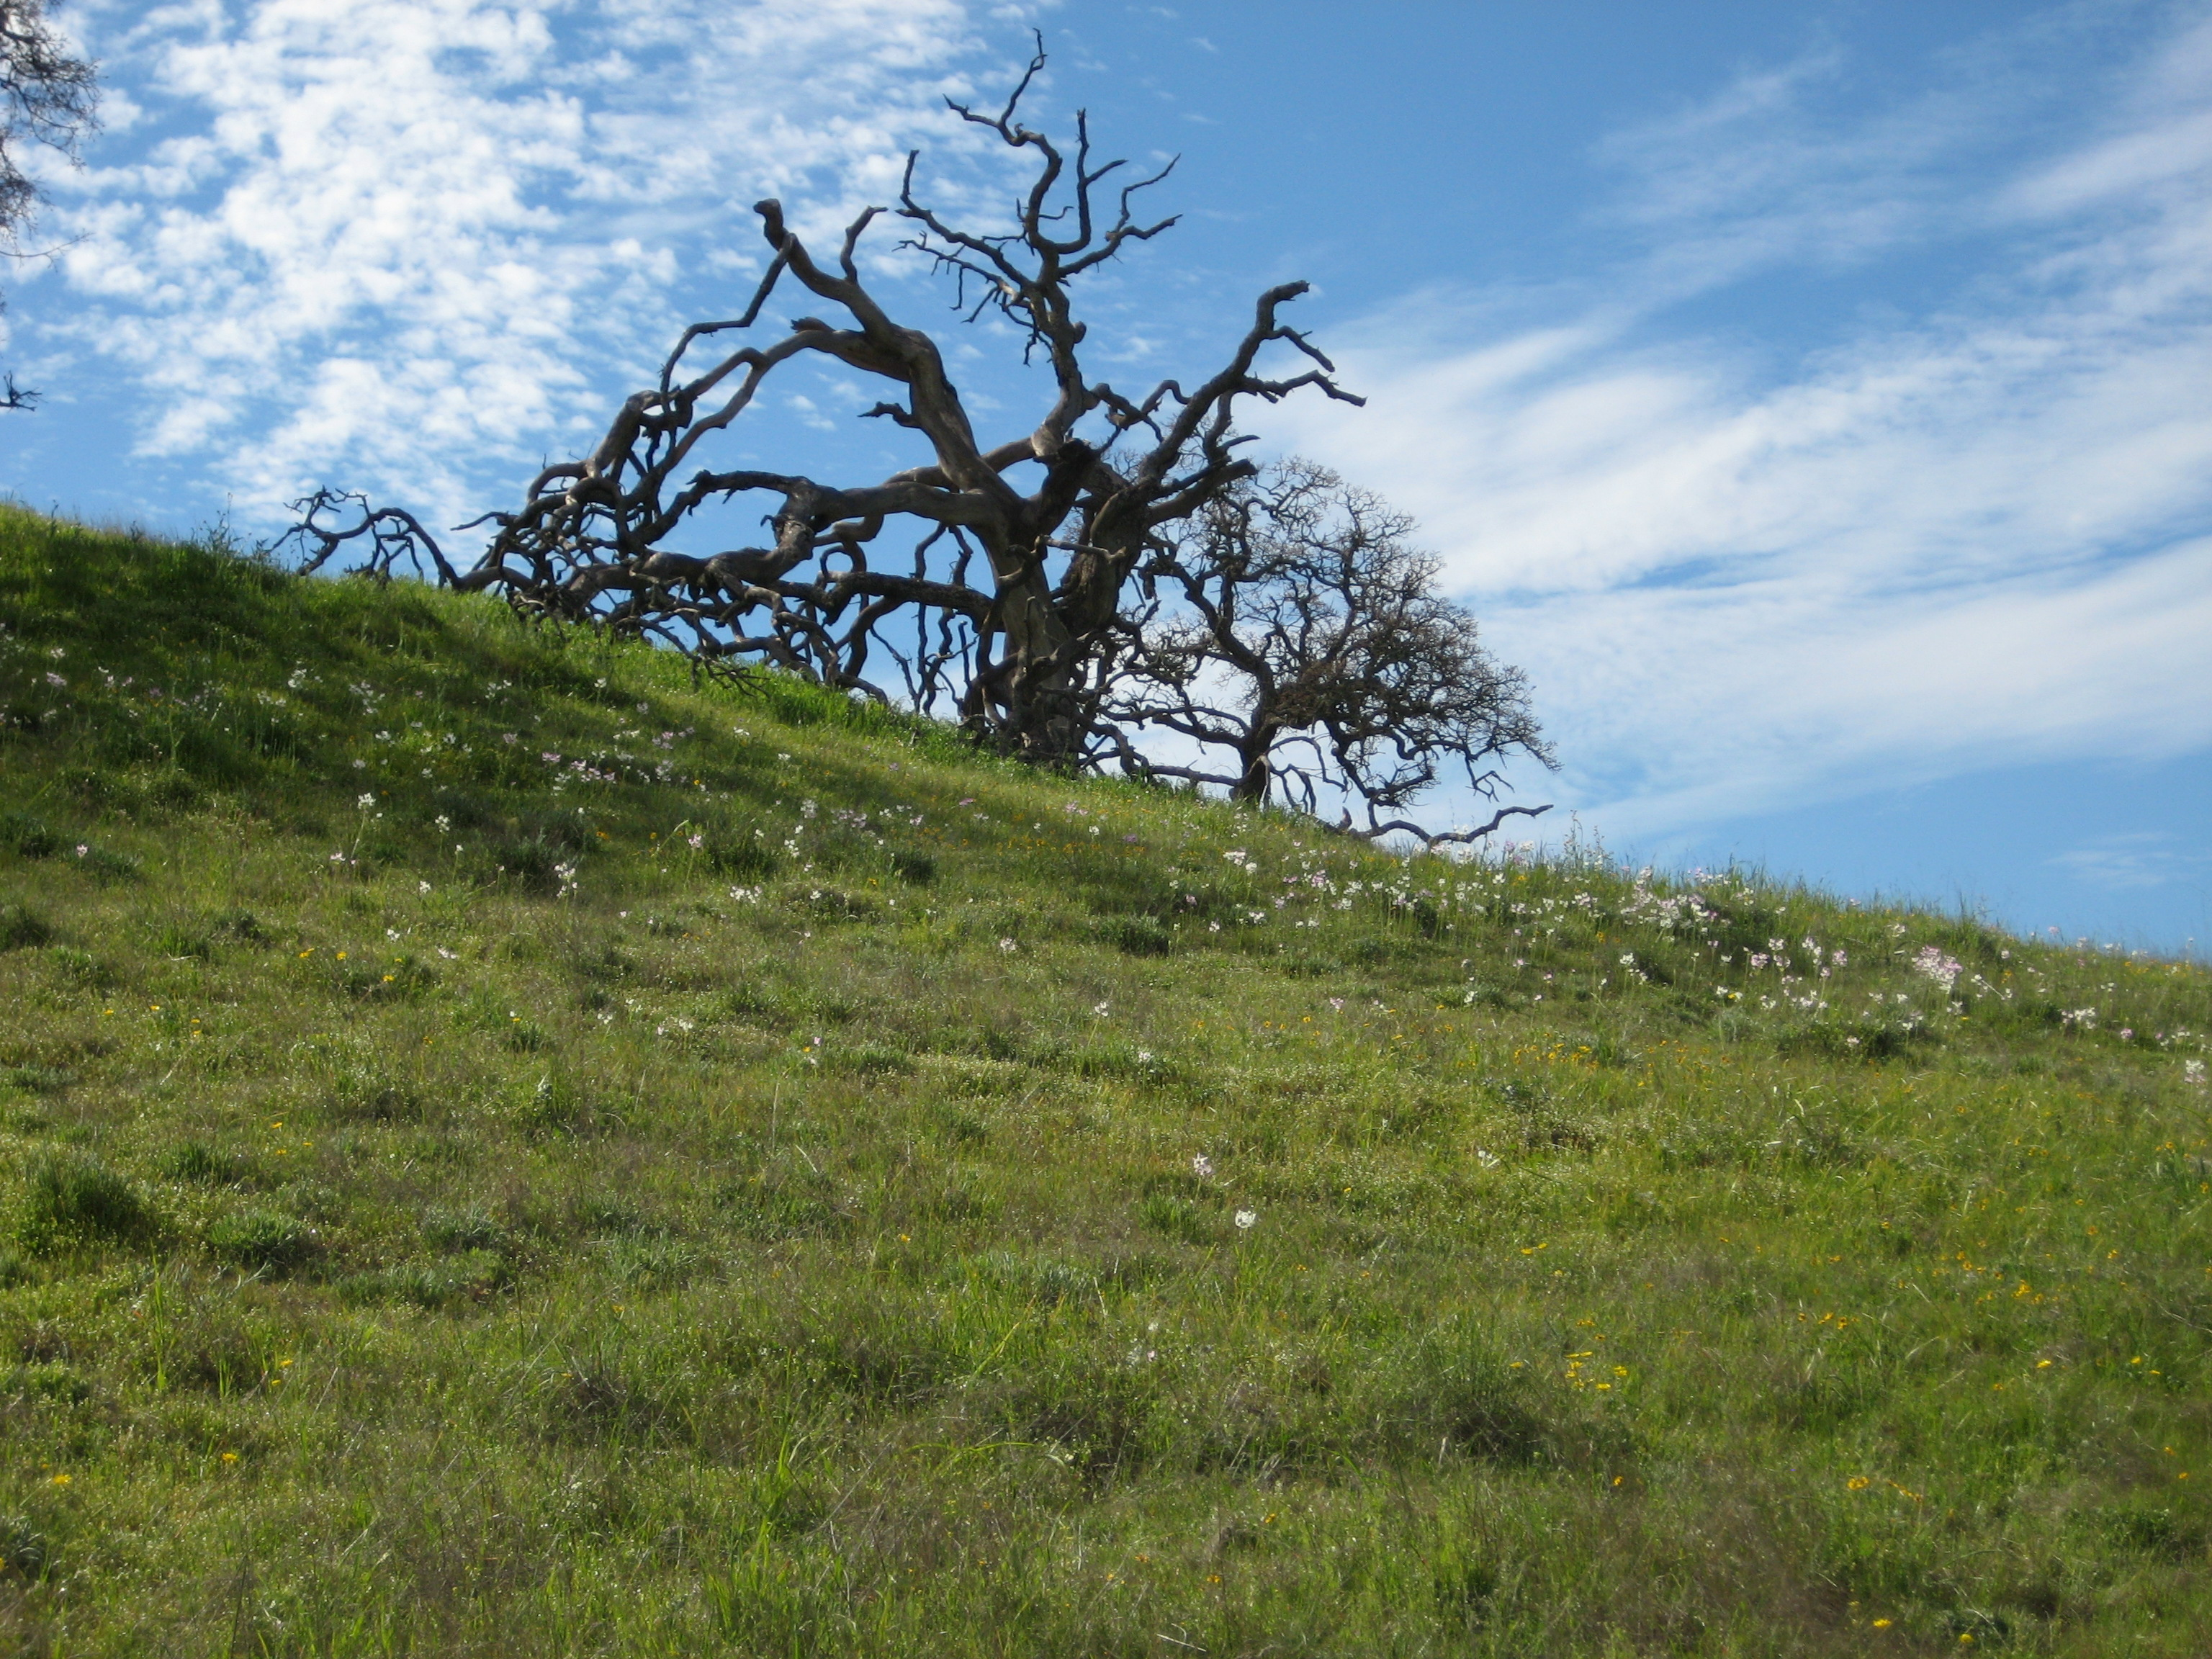 White wildflowers lead the way up a green hill to a gnarled tree against a bright sky in Pacheco State Park, California.